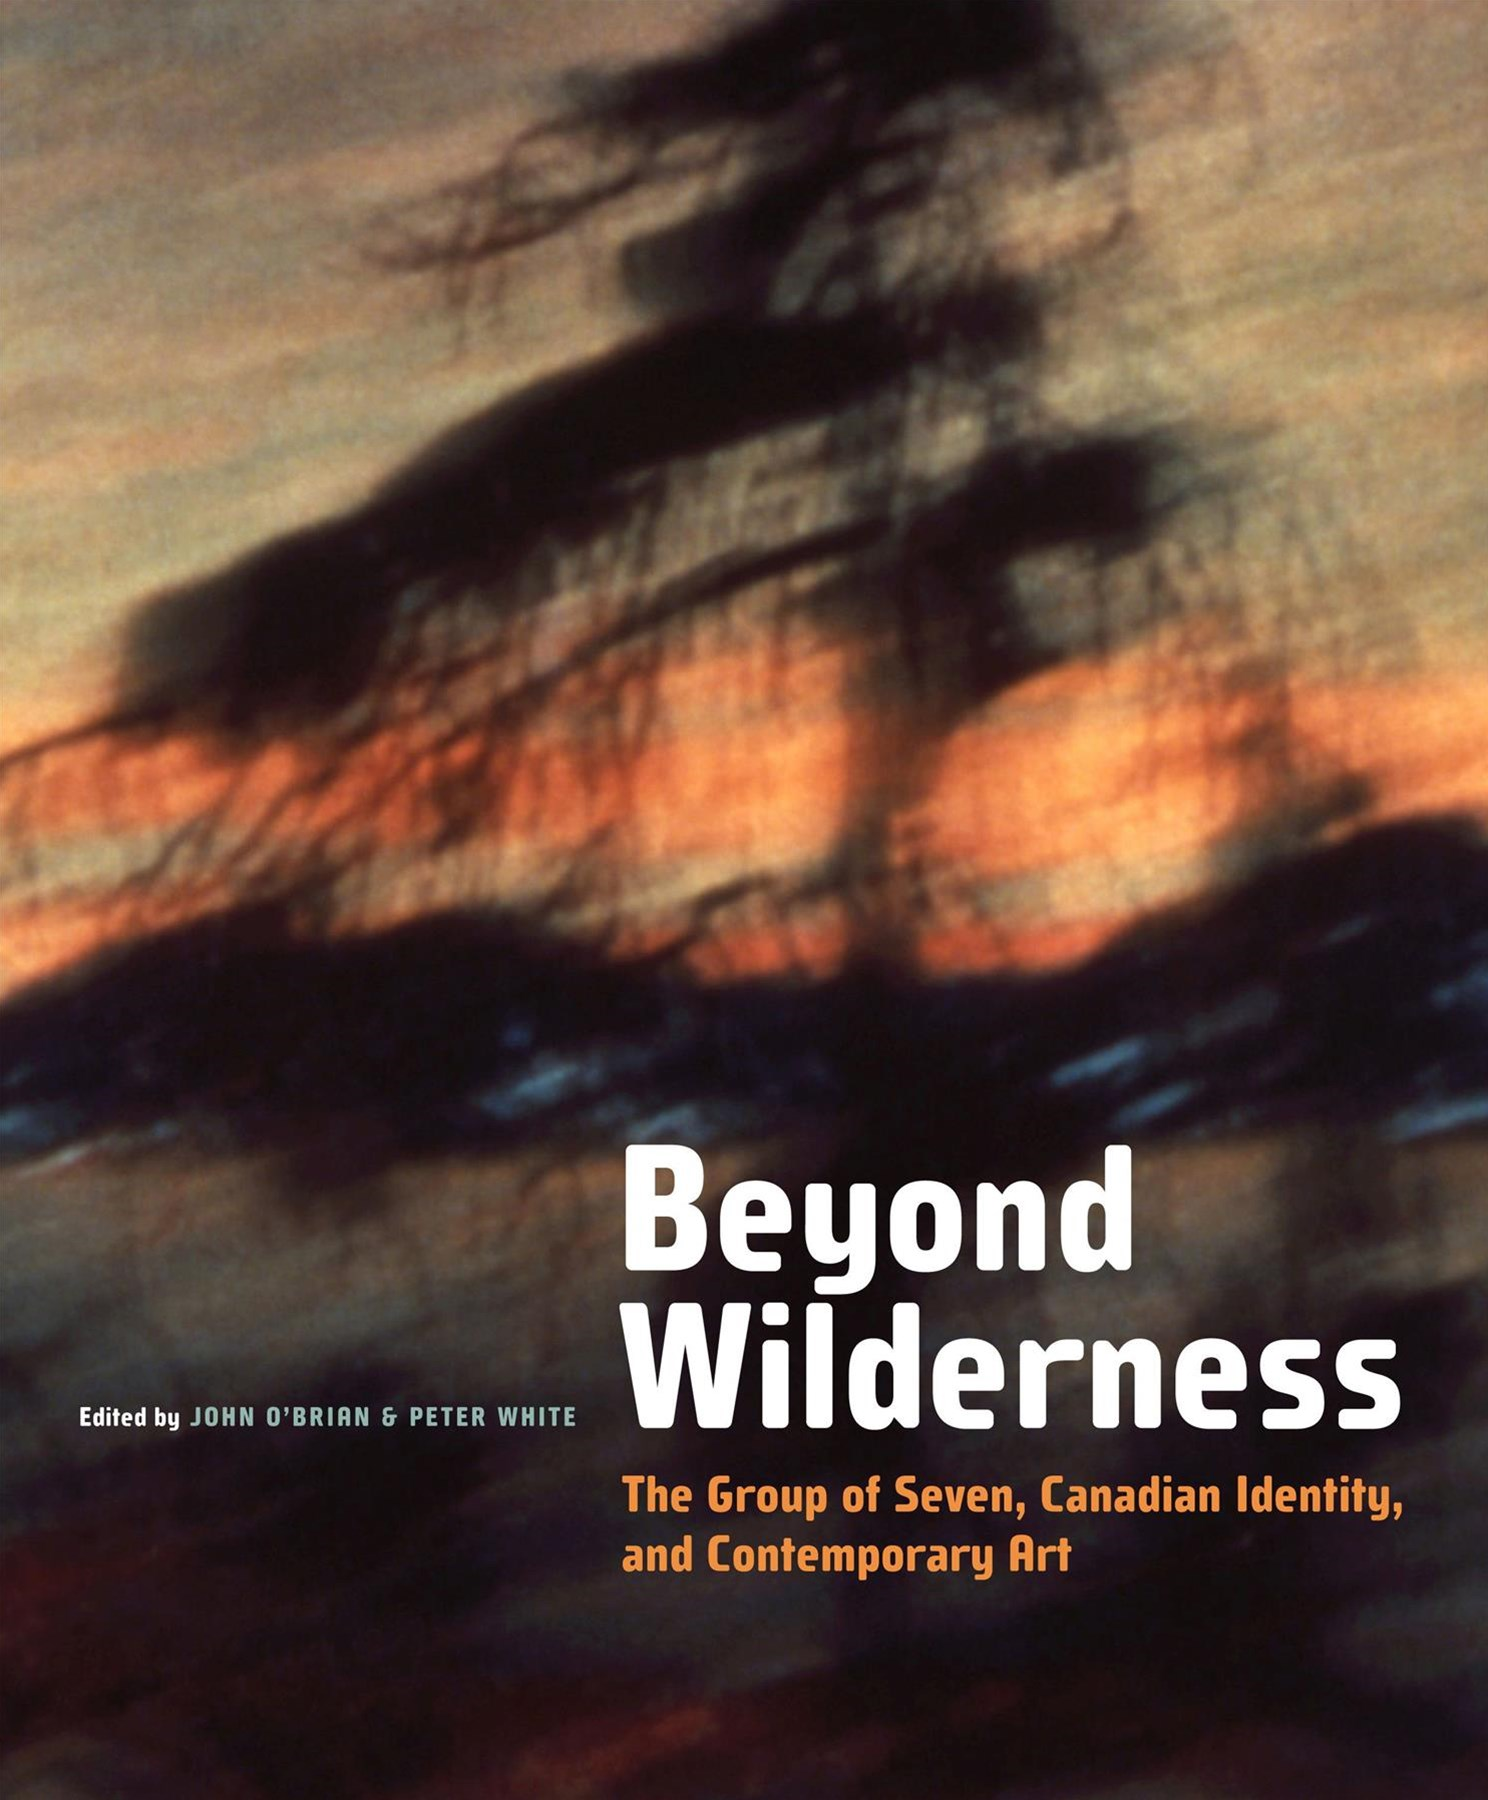 Beyond Wilderness